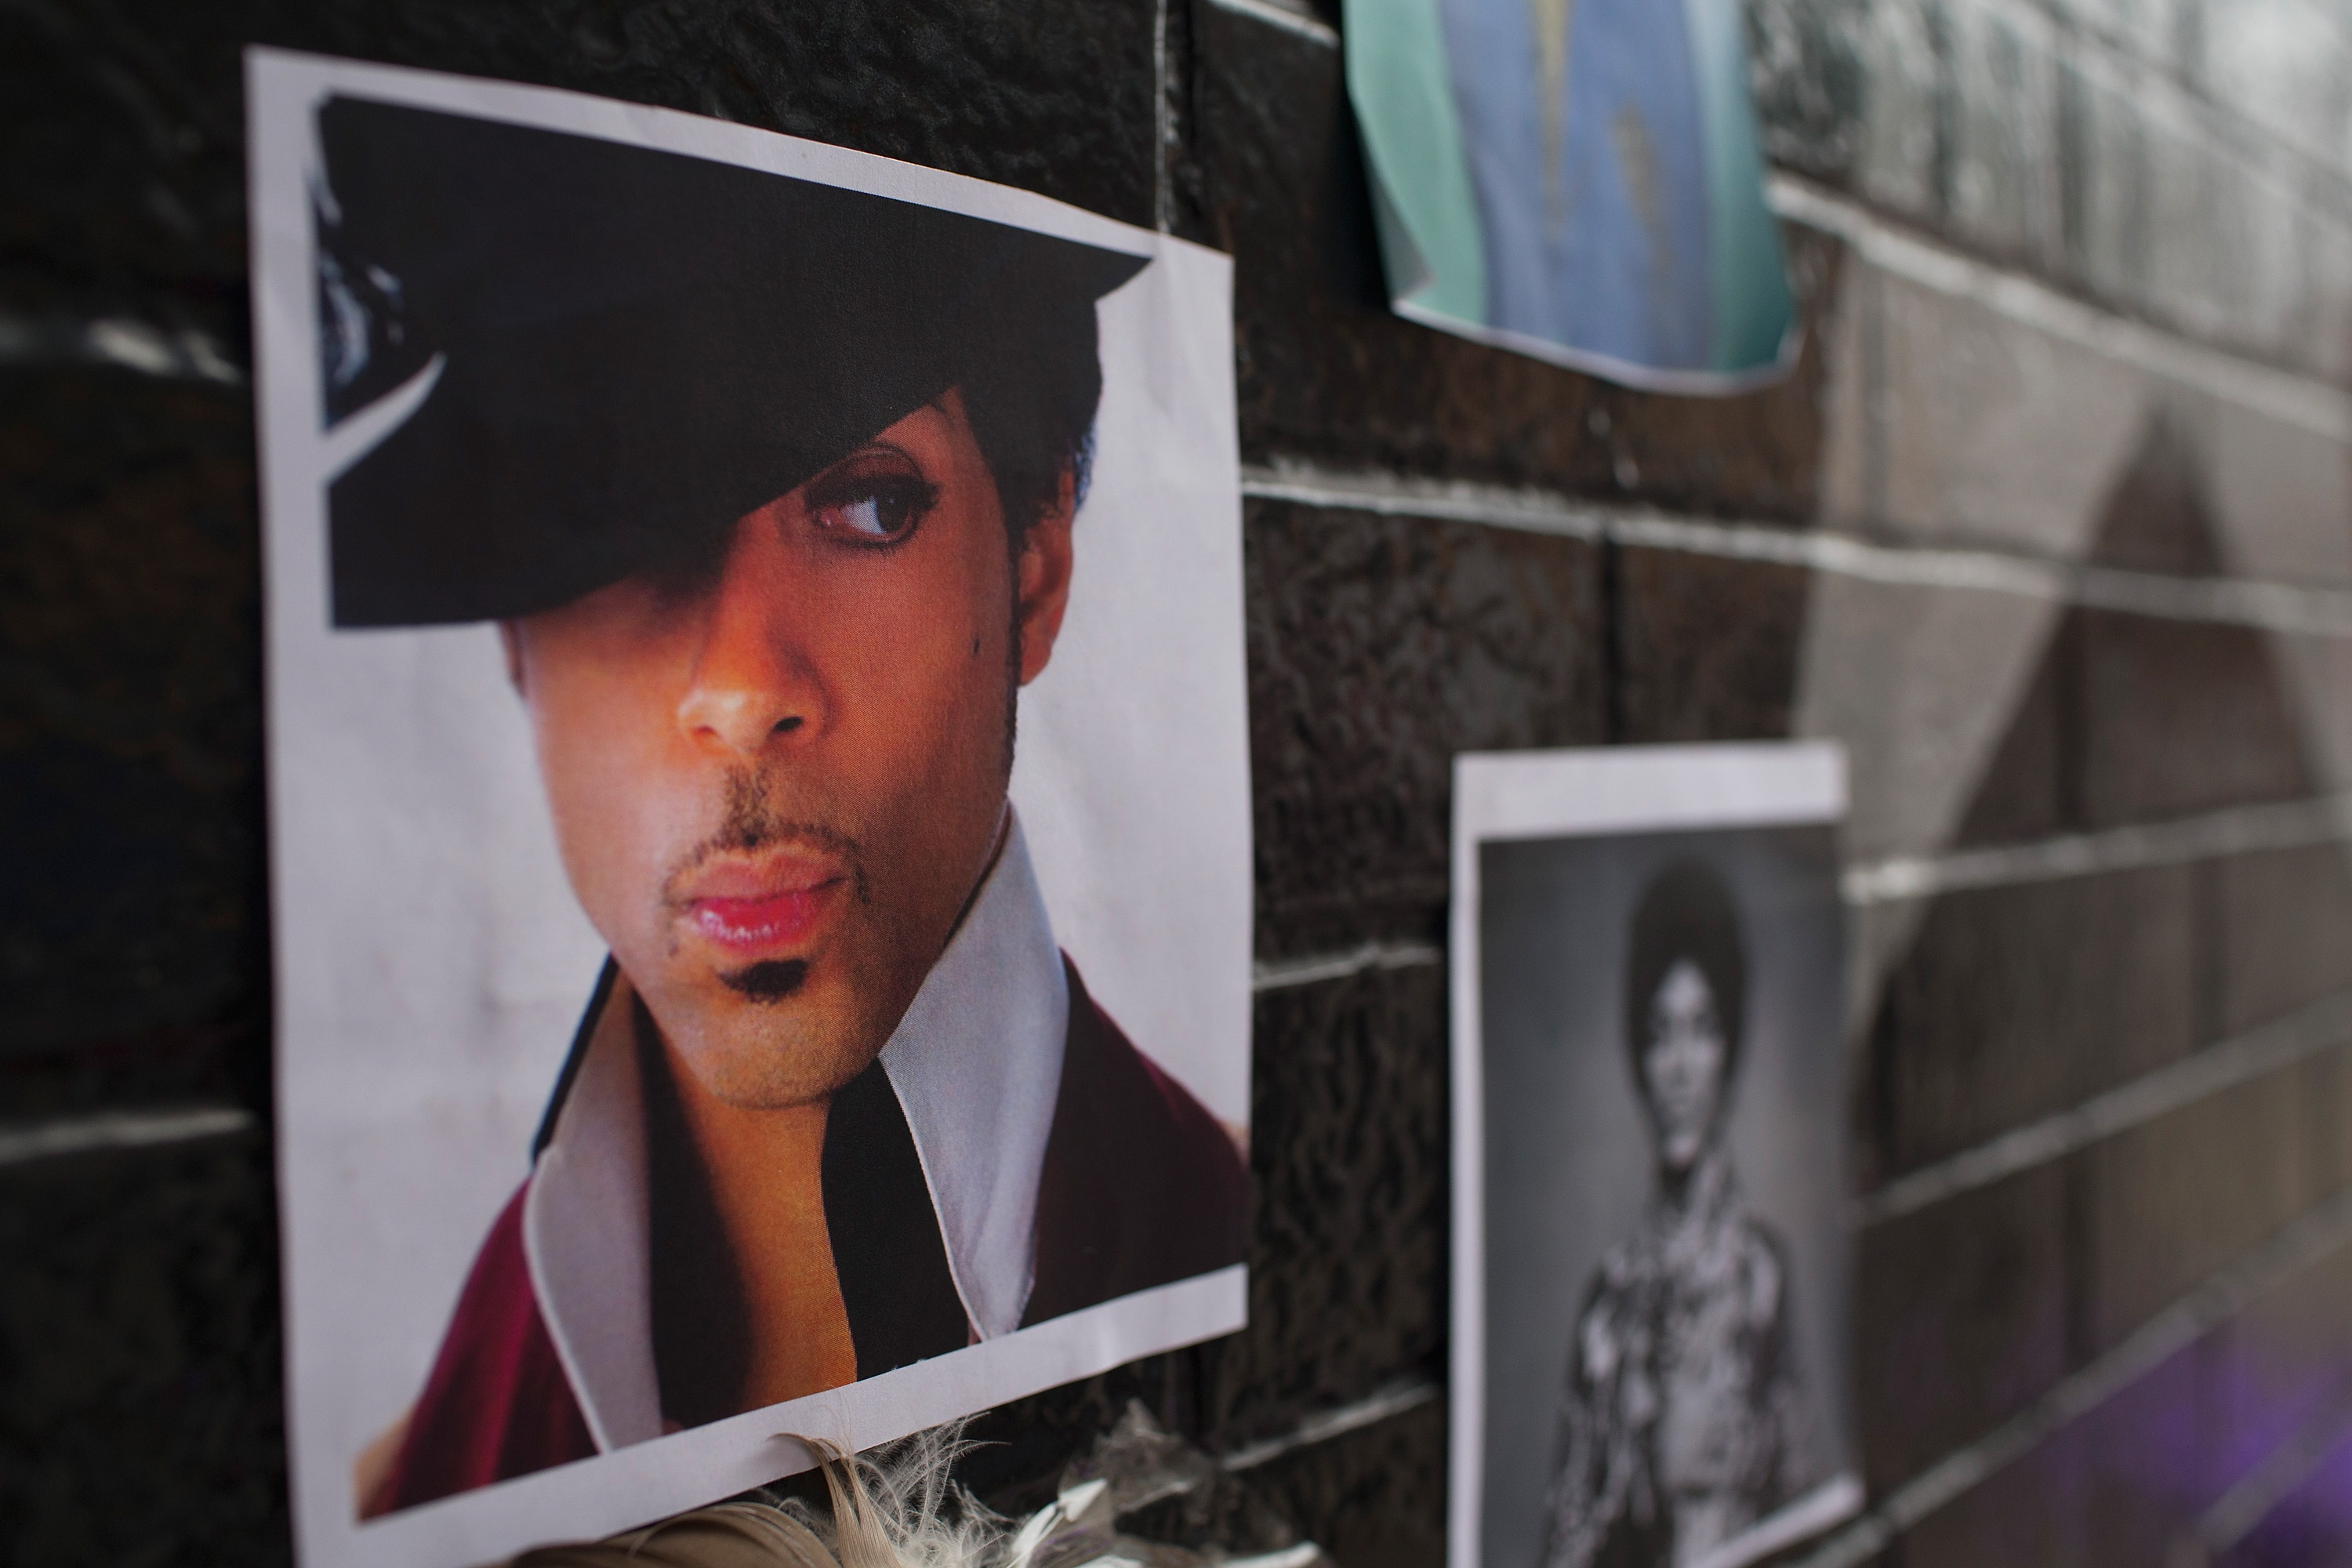 Photos of Prince are attached to the wall outside of the First Avenue nightclub where fans have created a memorial to the artist on April 22, 2016 in Minneapolis, Minnesota.